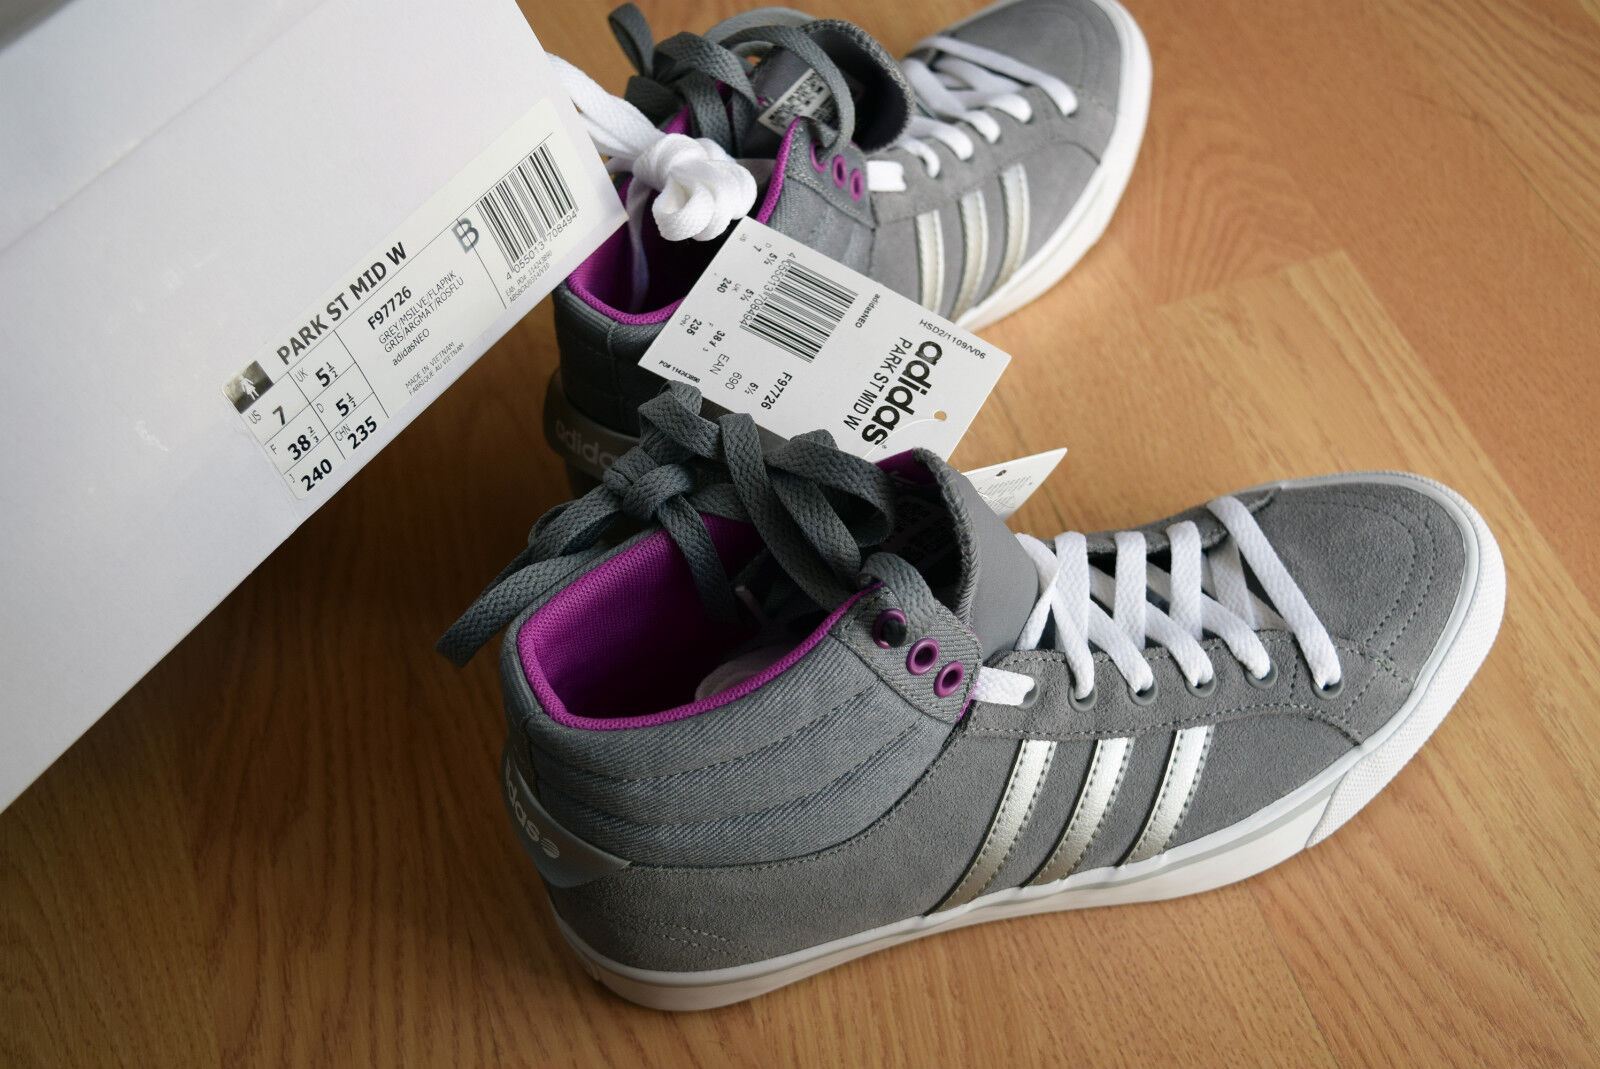 Adidas Parque 36,5 ST Medio W 36 36,5 Parque 37 38 40,5 NIZZA SuperStar HONEY Top Diez e5a0ad